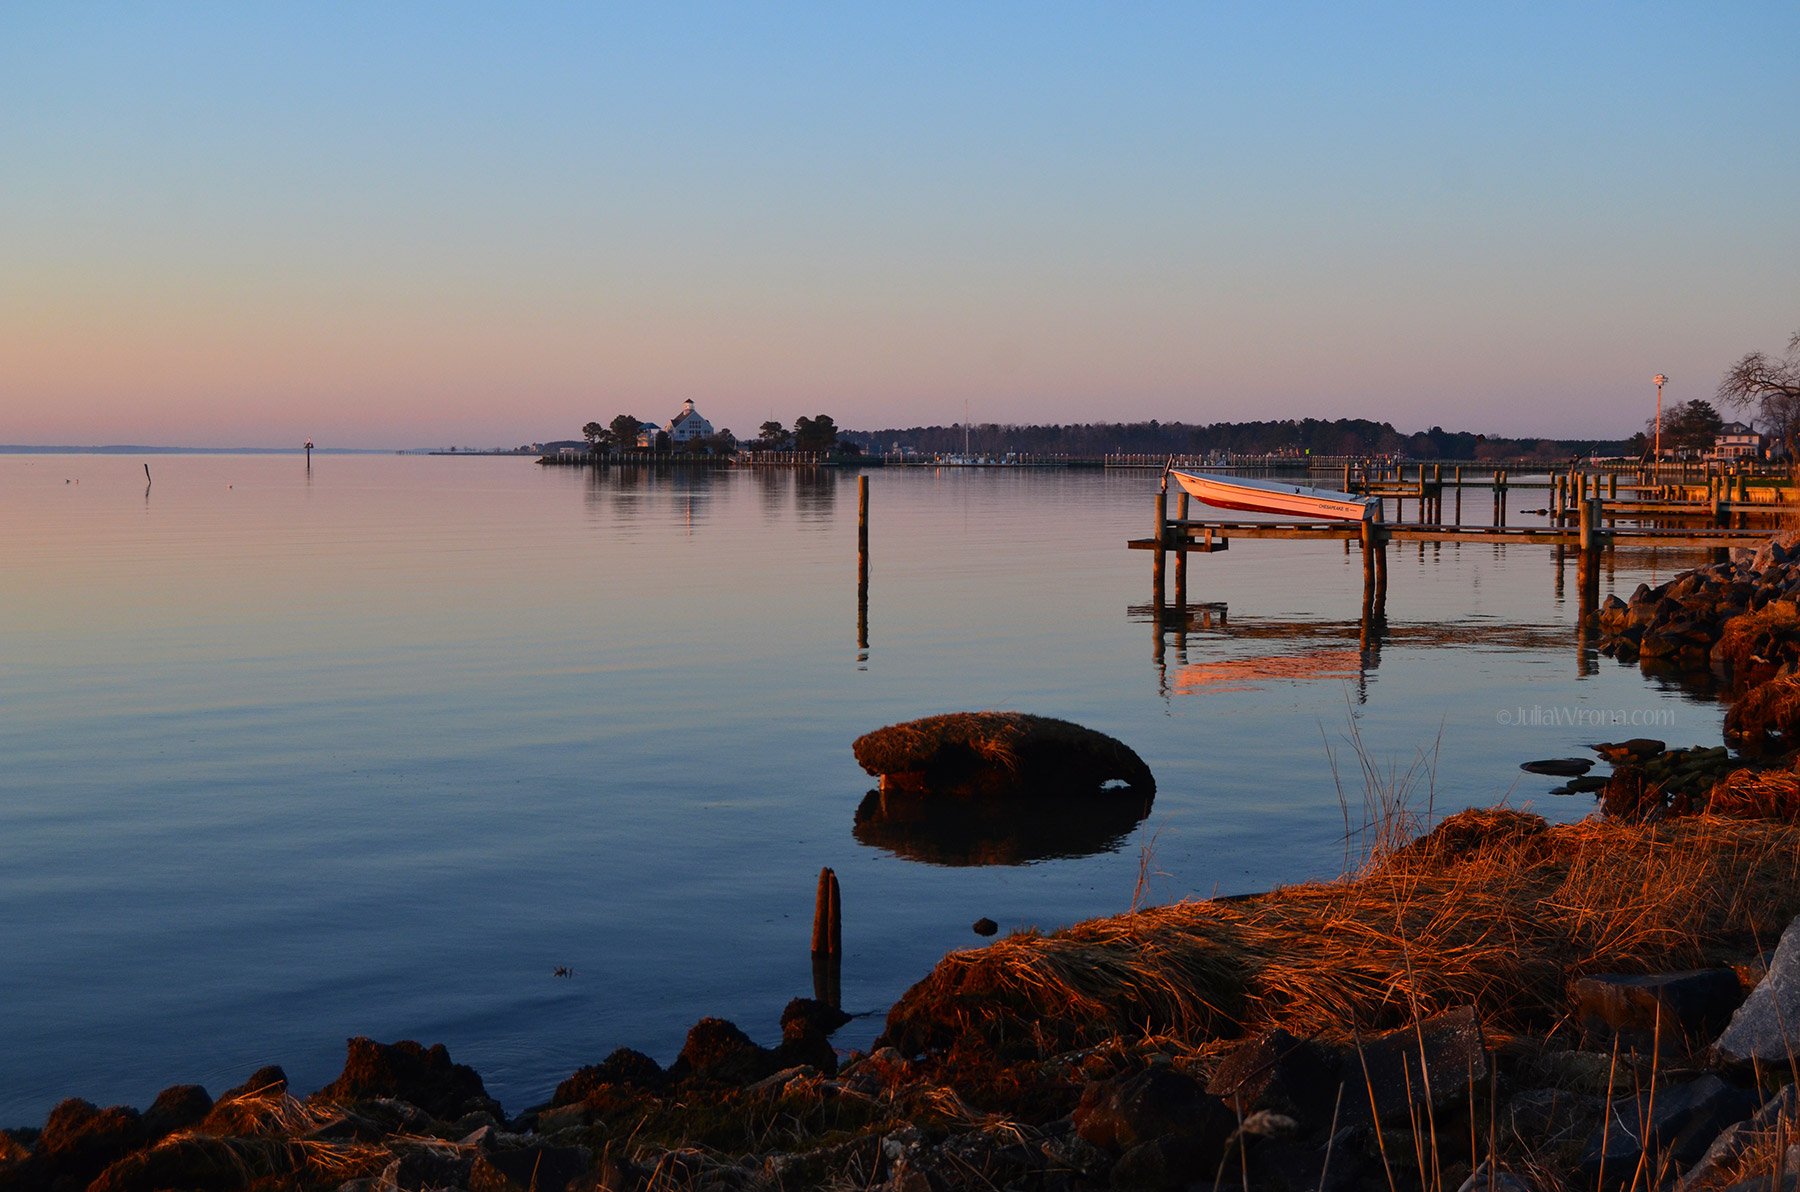 Weekend Escape on the Chesapeake